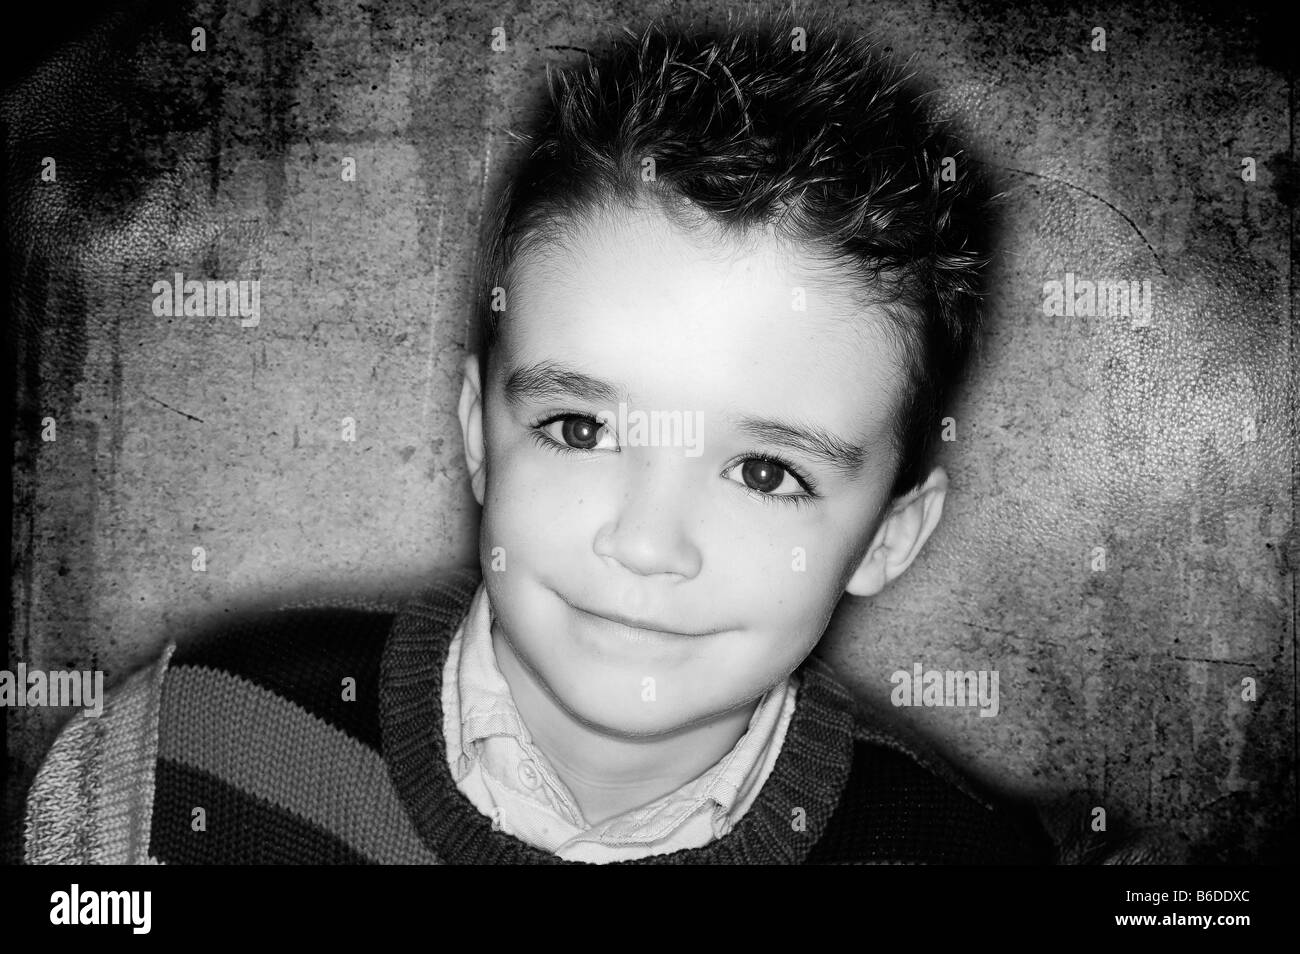 seven year old boy caucasian smiling spikey hair - Stock Image